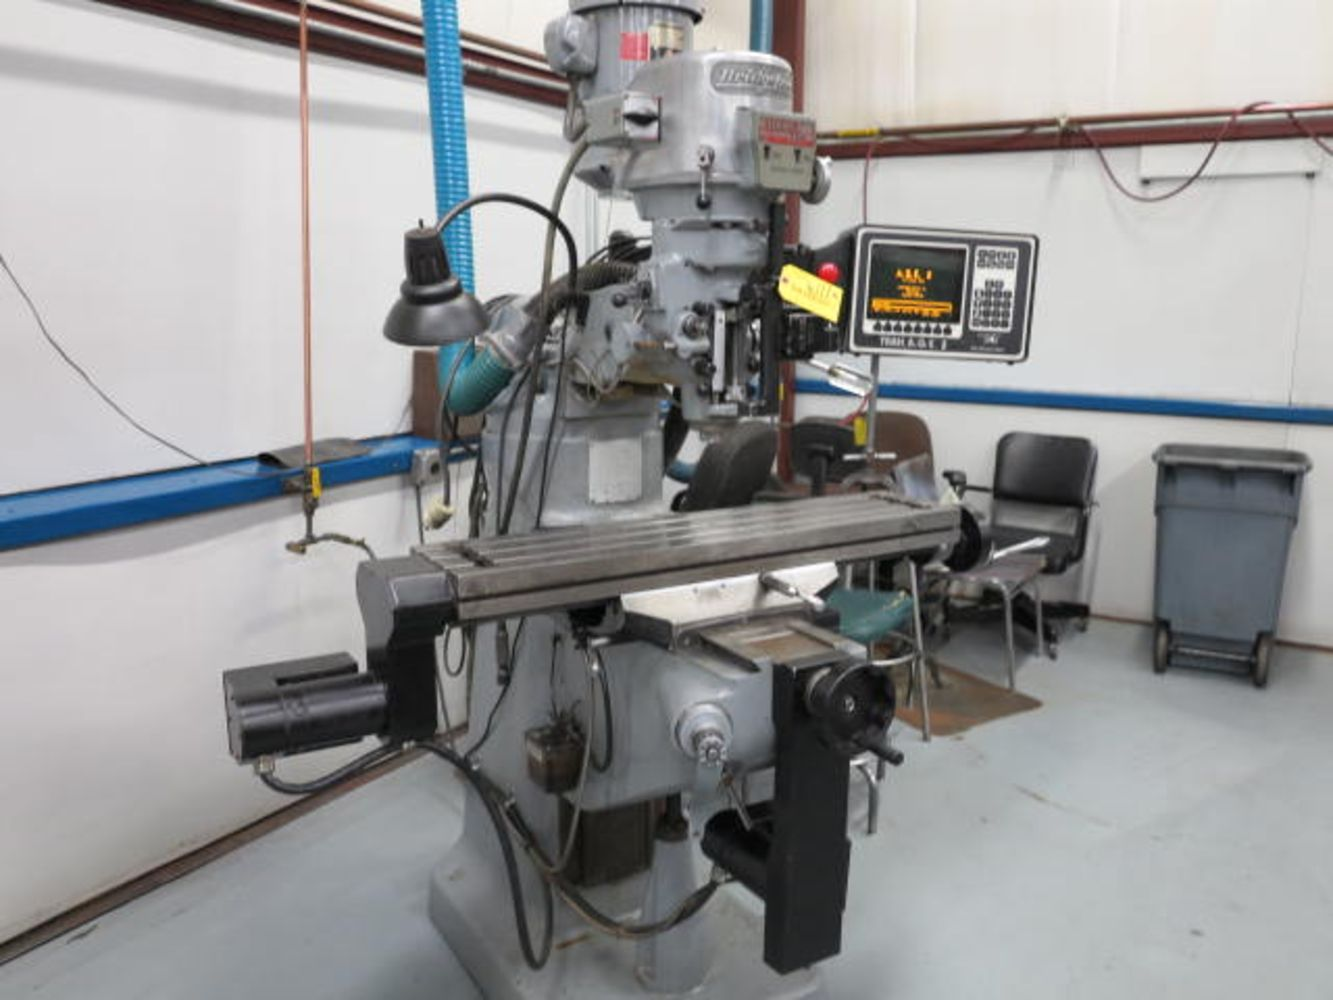 Super Clean Late Model Mold Making CNC Machine Shop featuring Late Model Agie EDM's, Mikron CNC's, Okuma Howa, Fadal VMC's and much more!